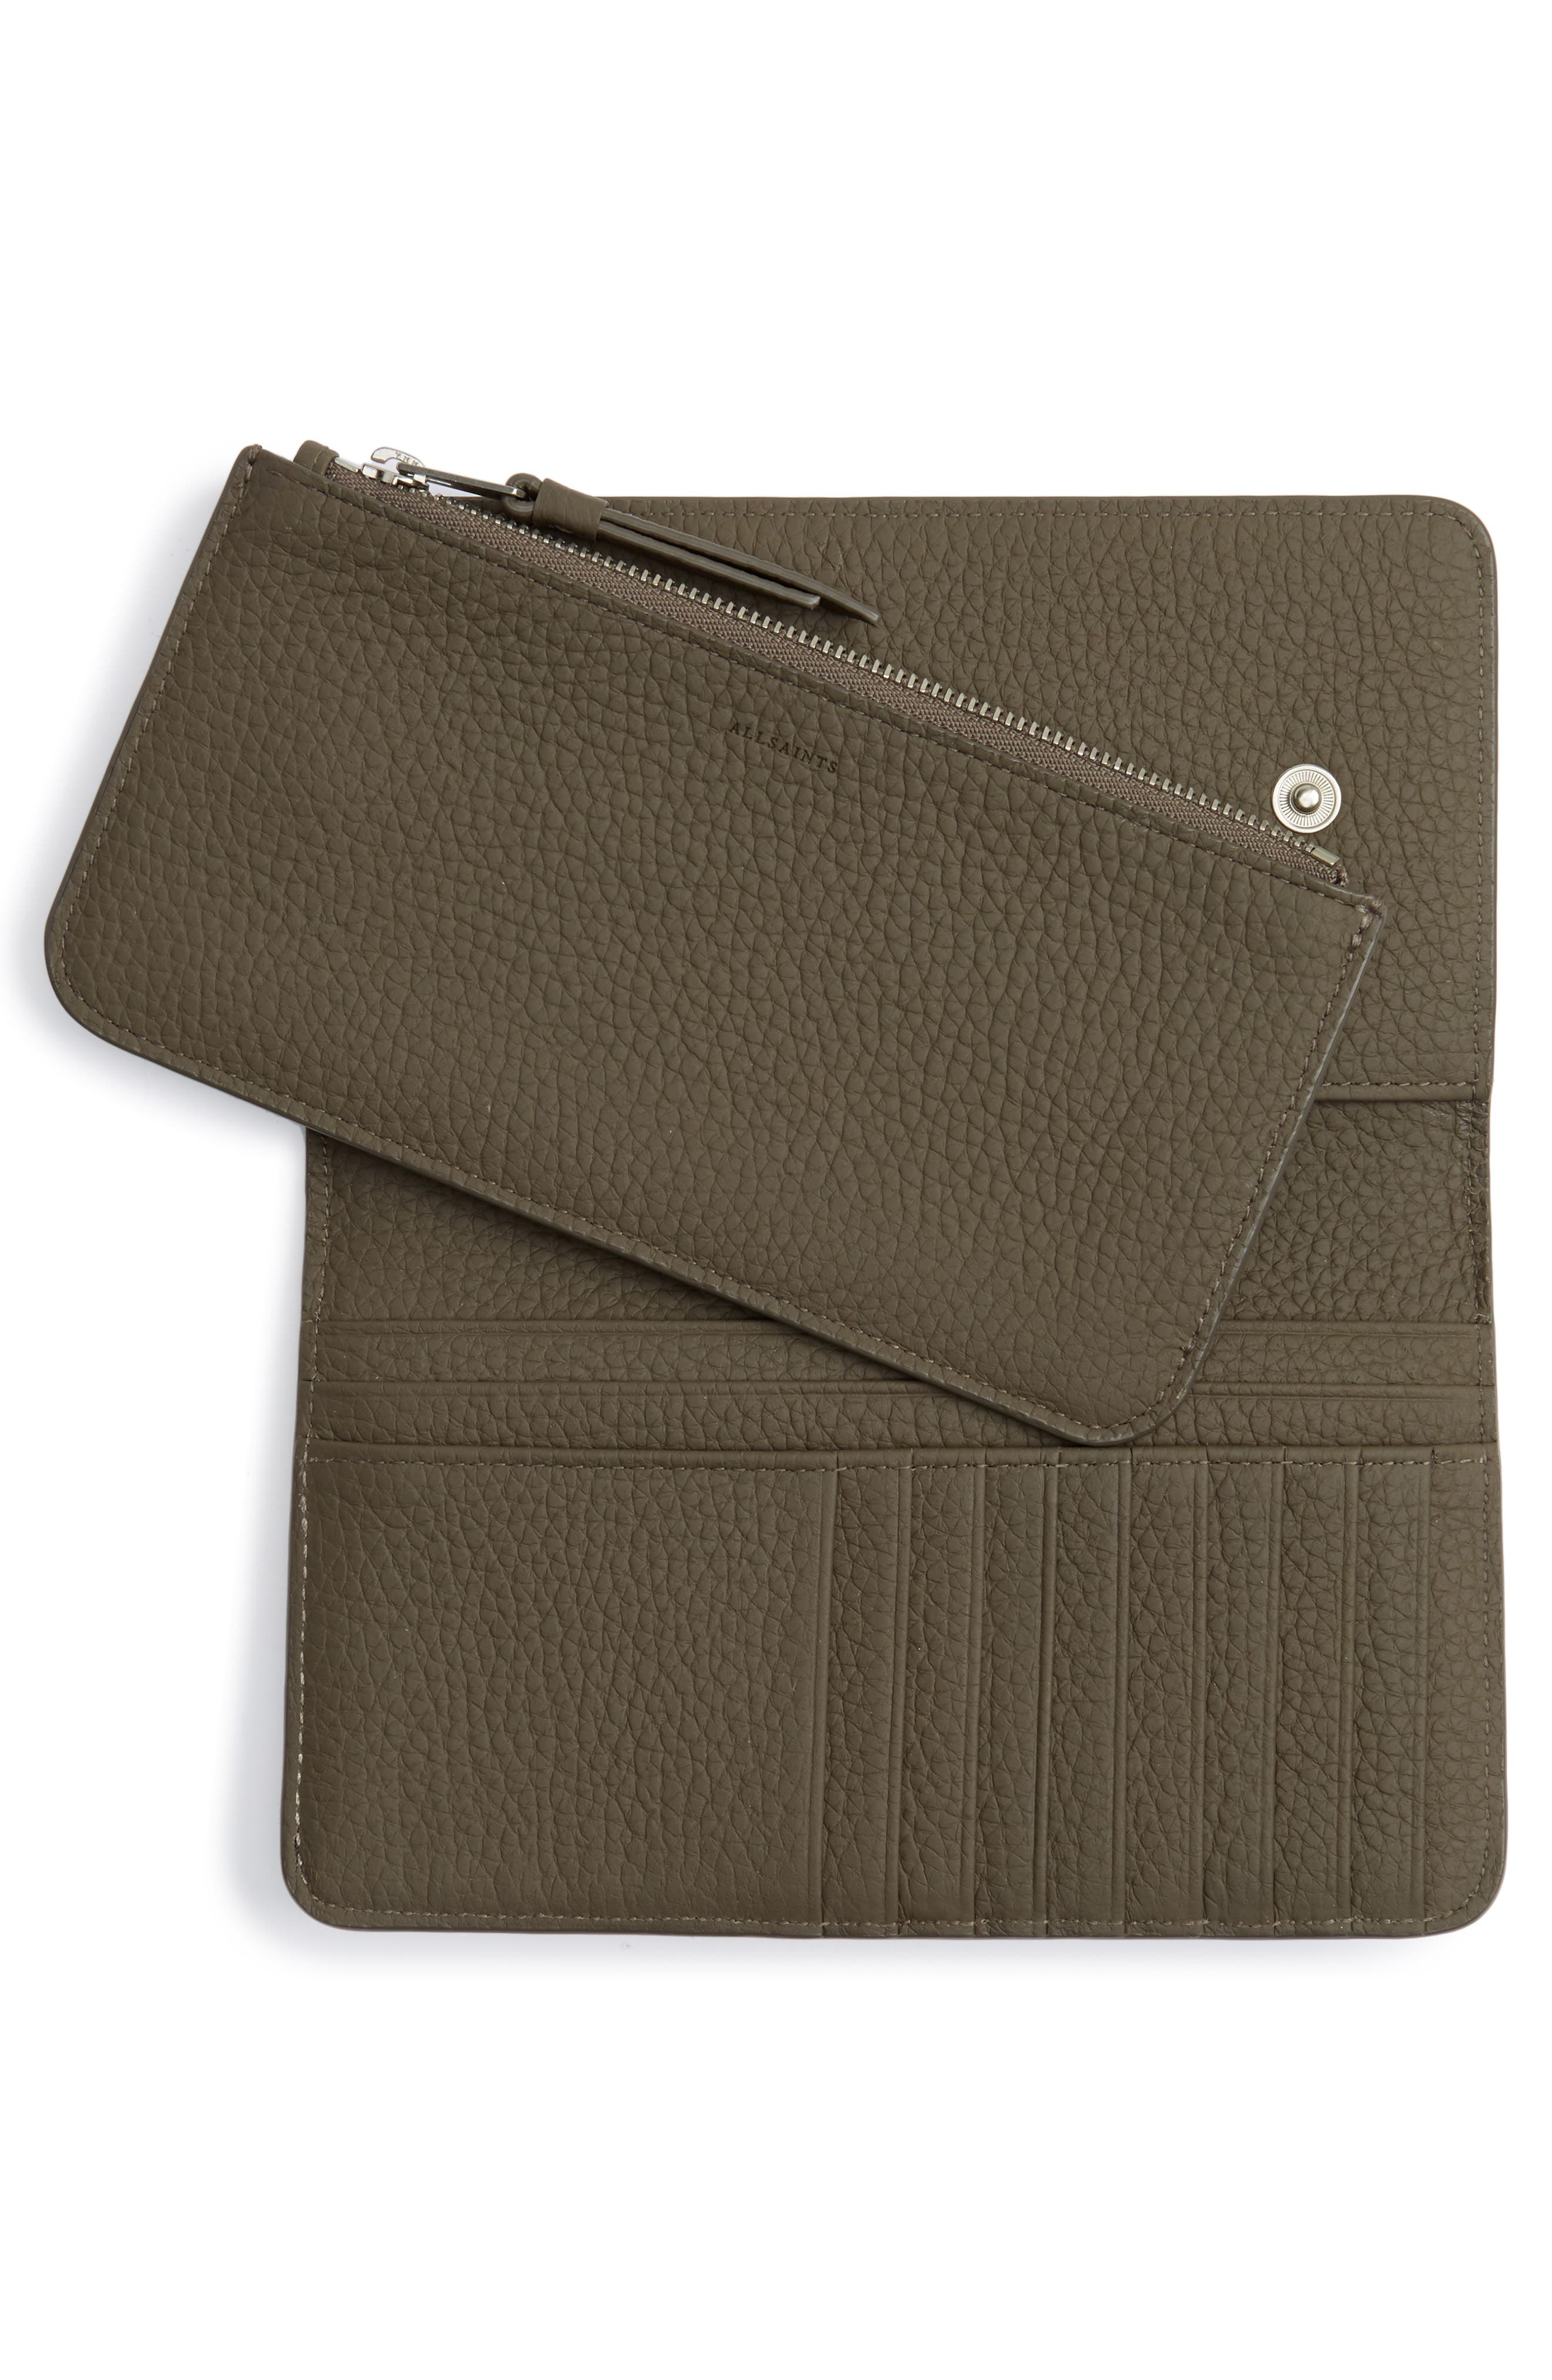 Ray Leather Wallet,                             Alternate thumbnail 4, color,                             024